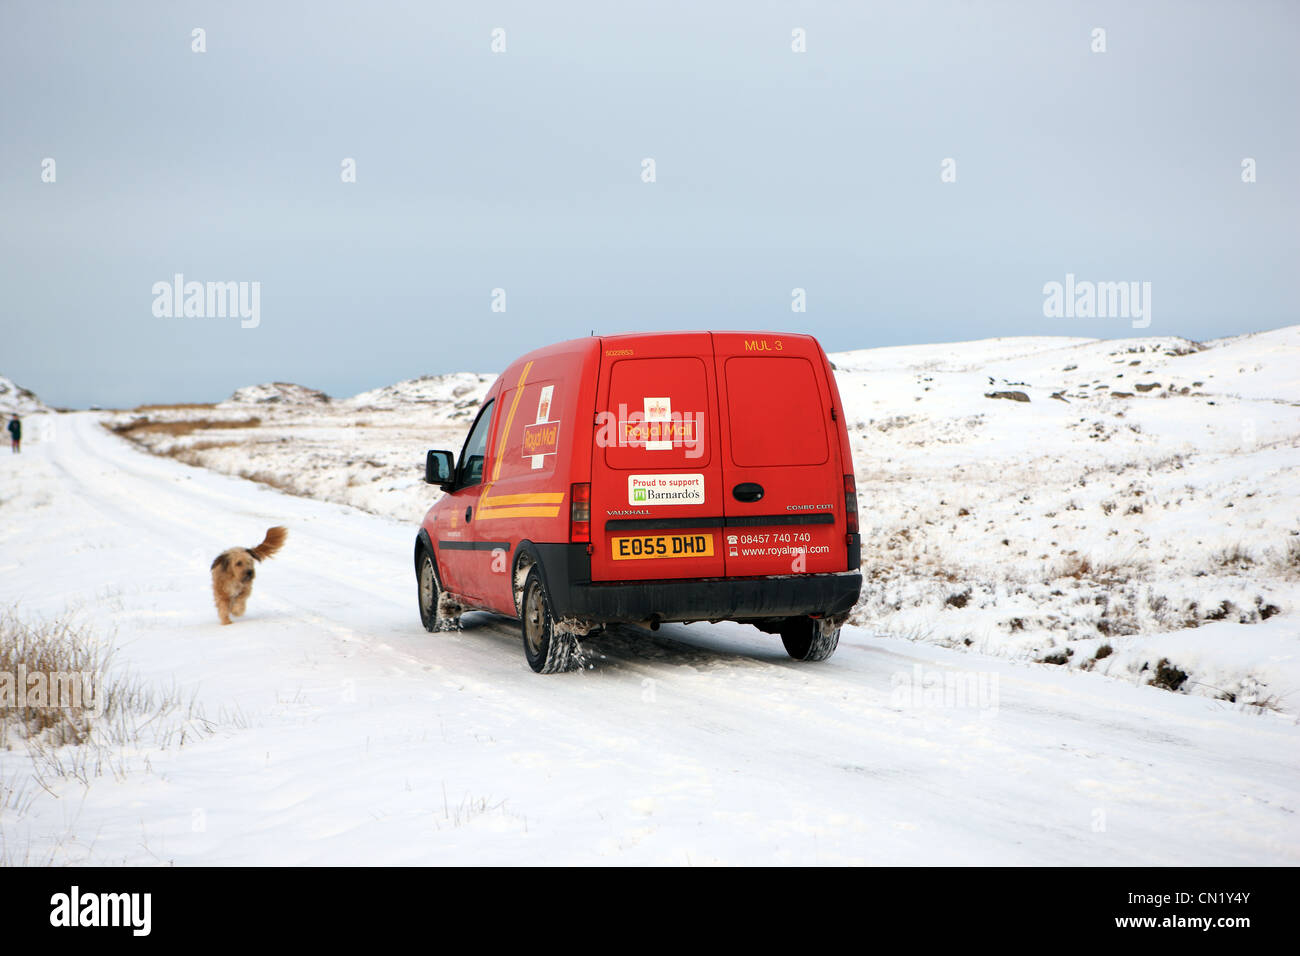 royal-mail-van-in-rural-countryside-in-w